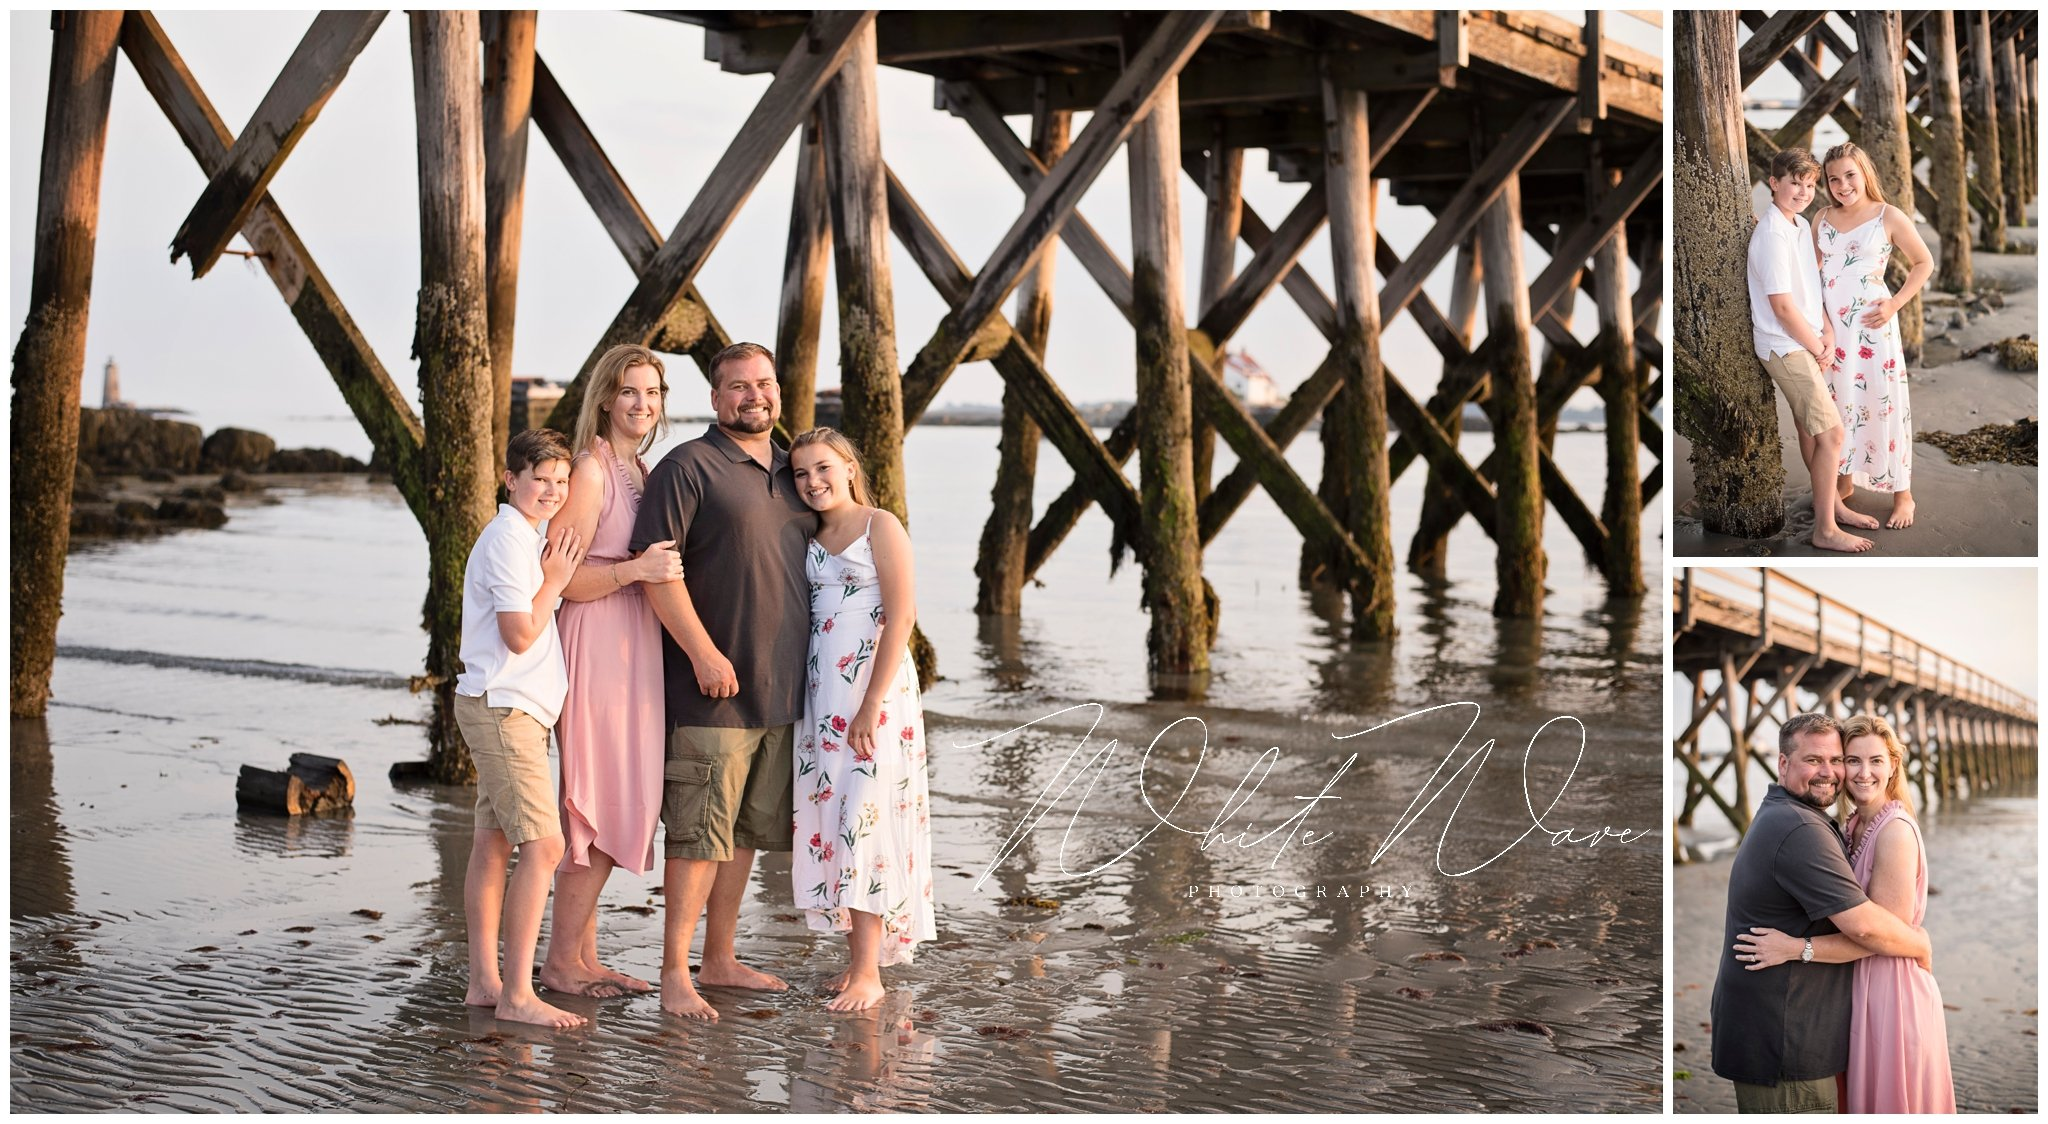 Exeter family photographer Jennie Bishop shares her top 5 tips for what to wear for your summer family portrait